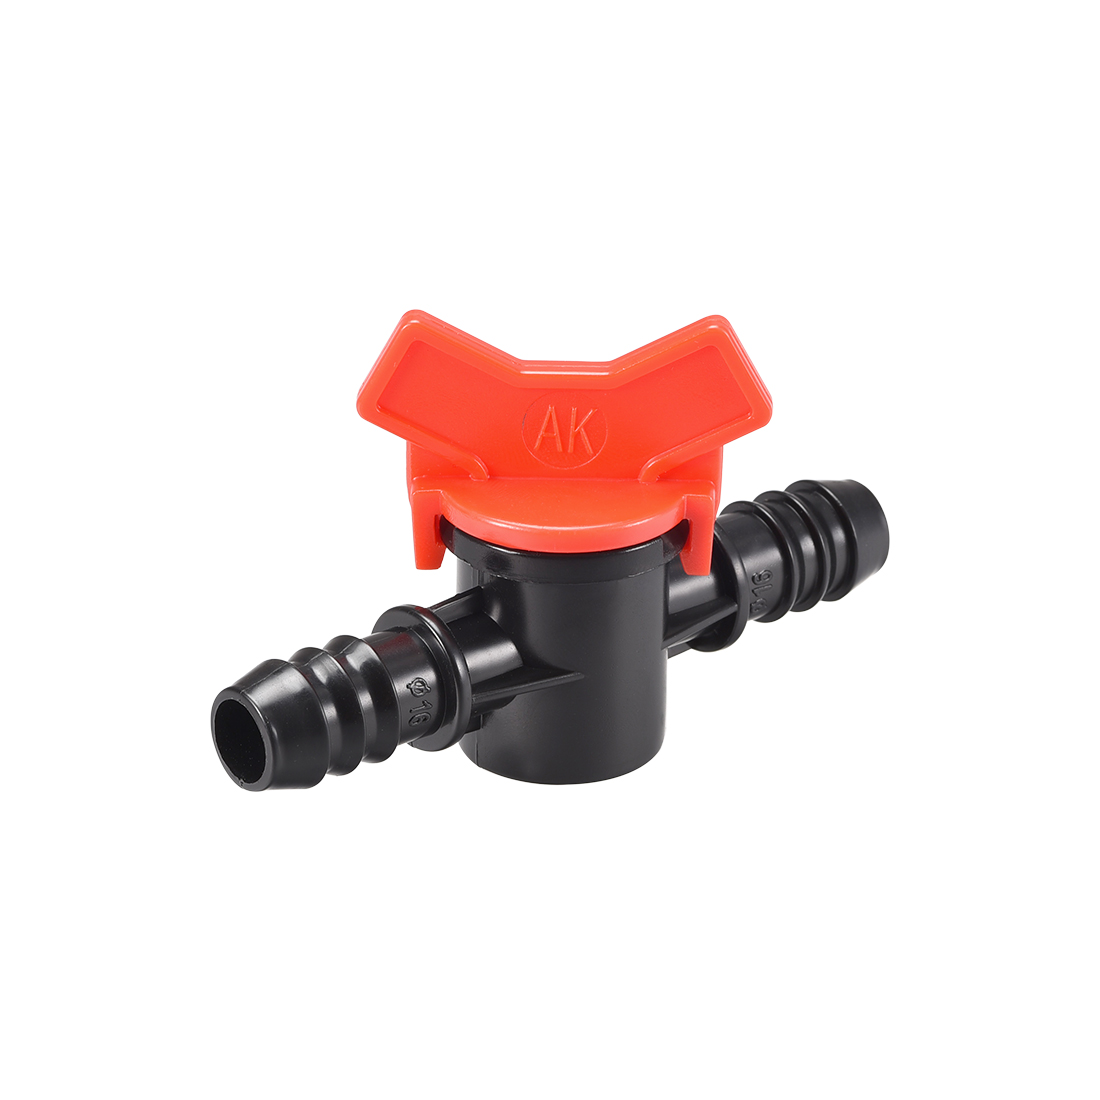 Drip Irrigation Barbed Valve for 1/2 Inch Double Male Barbed Valve